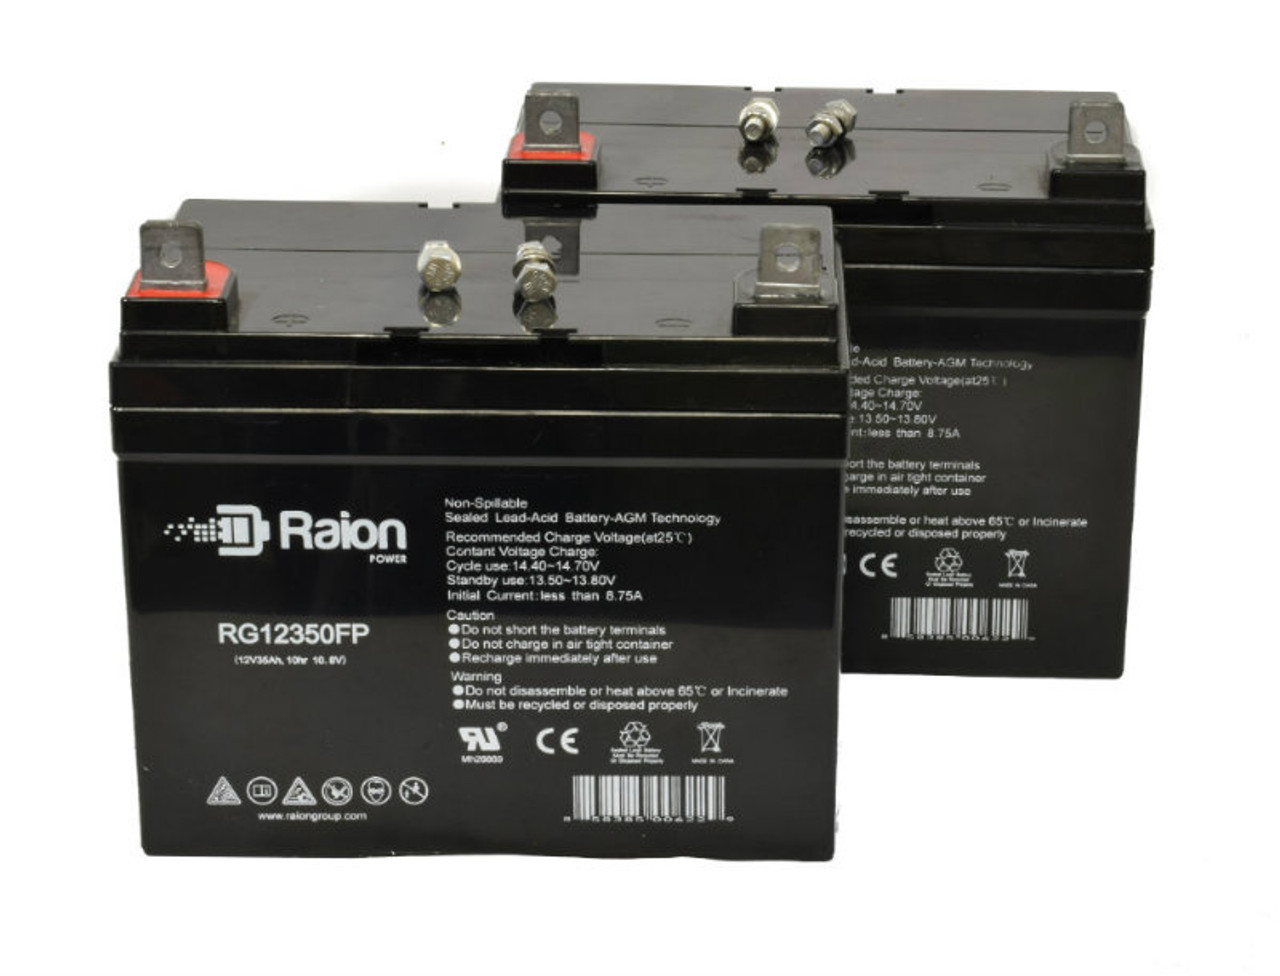 Raion Power RG12350FP Replacement Wheelchair Battery For Fortress Scooters 2200 FS U1 (2 Pack)